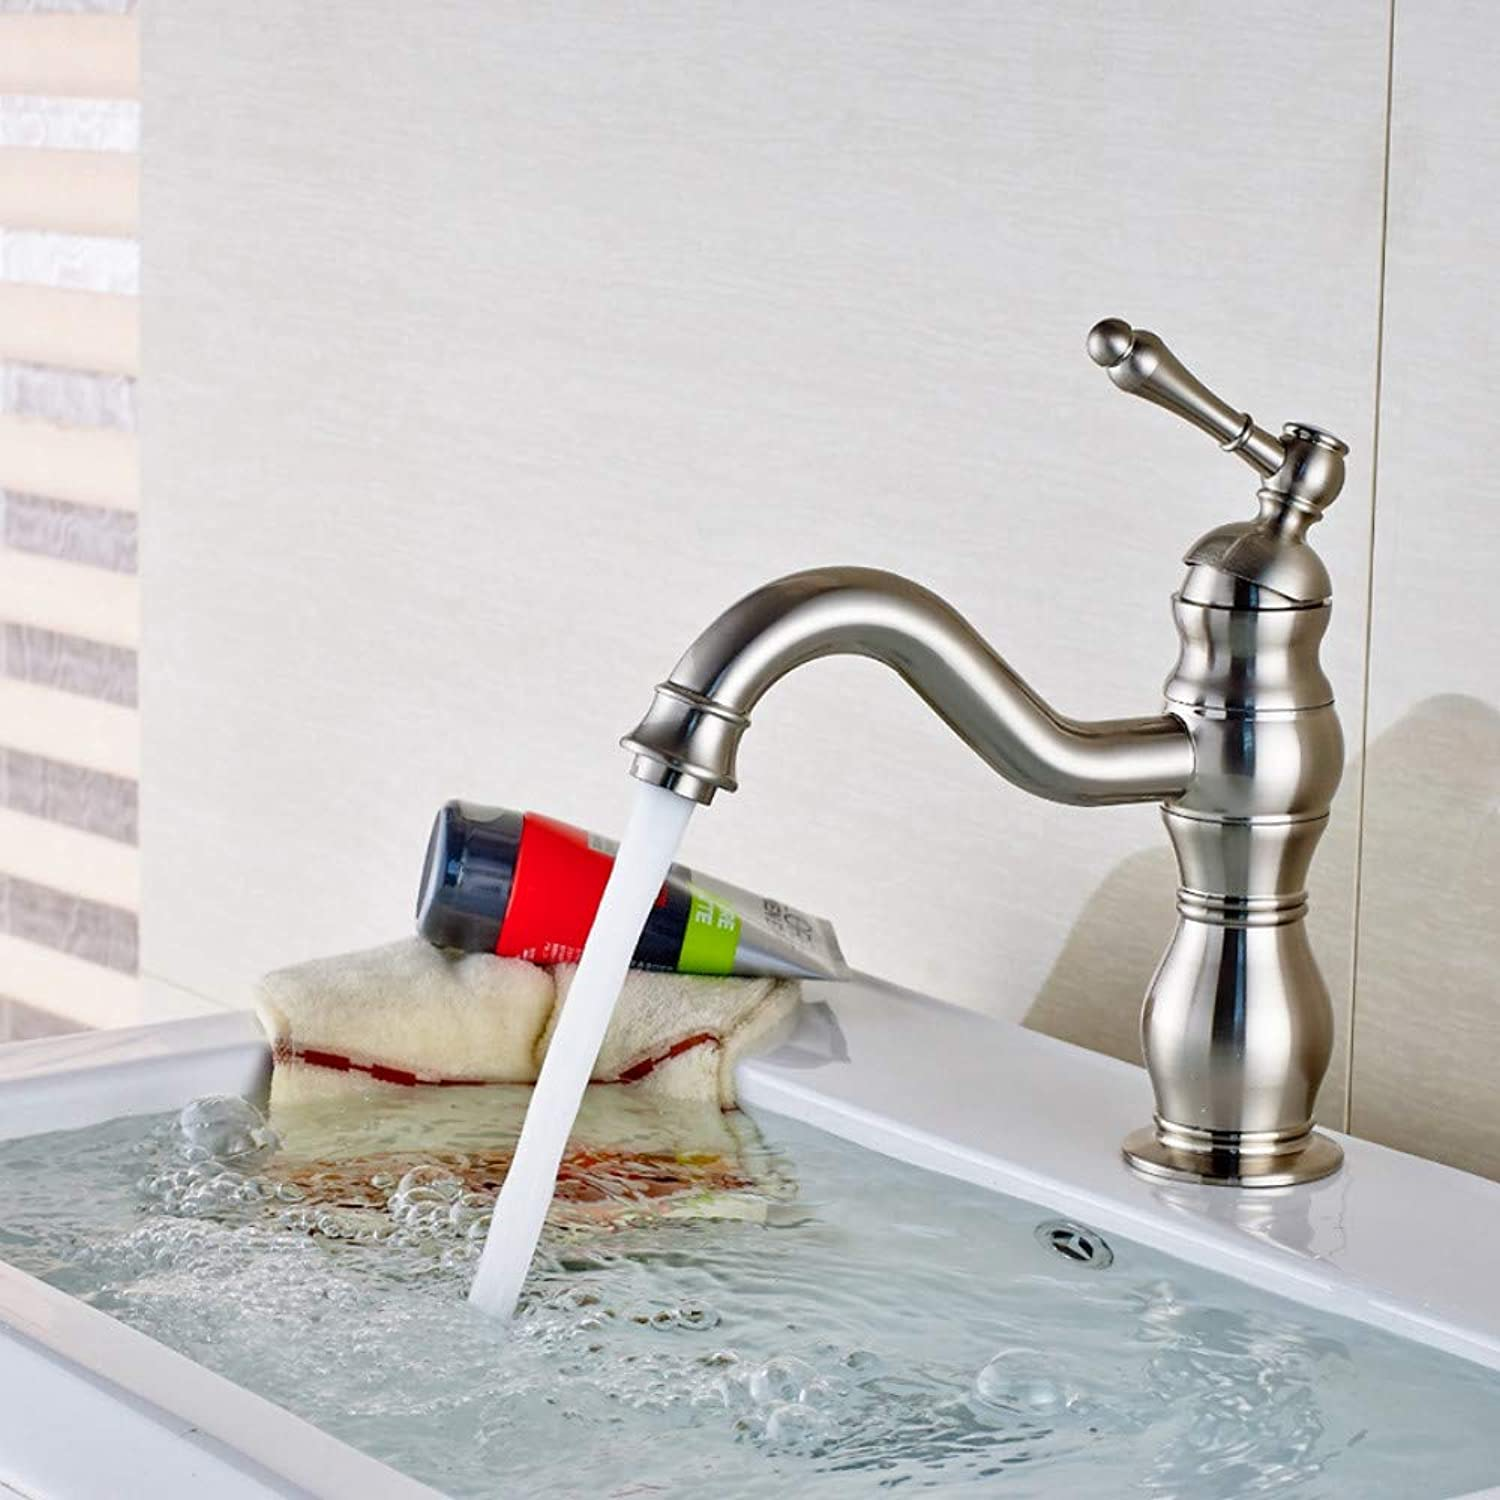 LLLYZZ New Arrival Deck Mounted Brushed Nickel Bathroom Faucet Solid Brass Vanity Sink Mixer Tap New